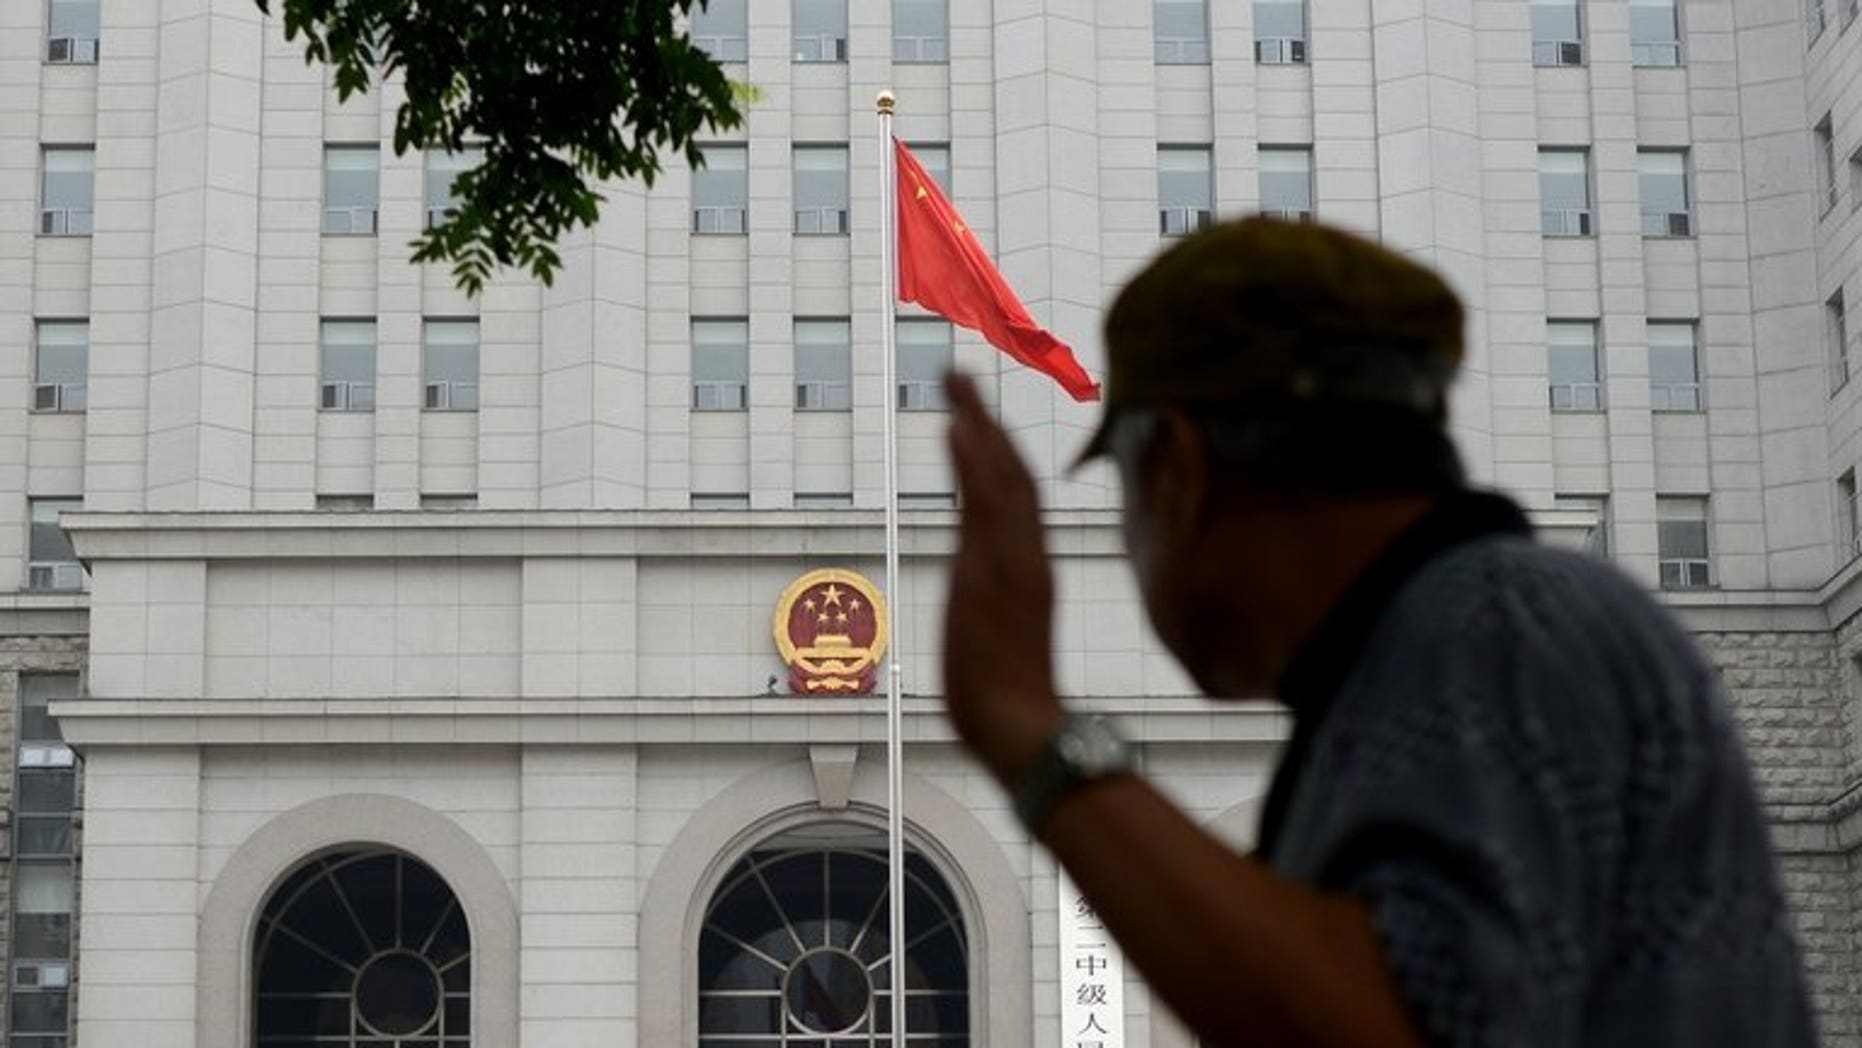 A Chinese civilian walks past a courthouse in Beijing, on July 8, 2013. China for the first time has issued guidelines aimed at preventing wrongful or unjust court judgements in response to high-profile judicial scandals, state media reported.